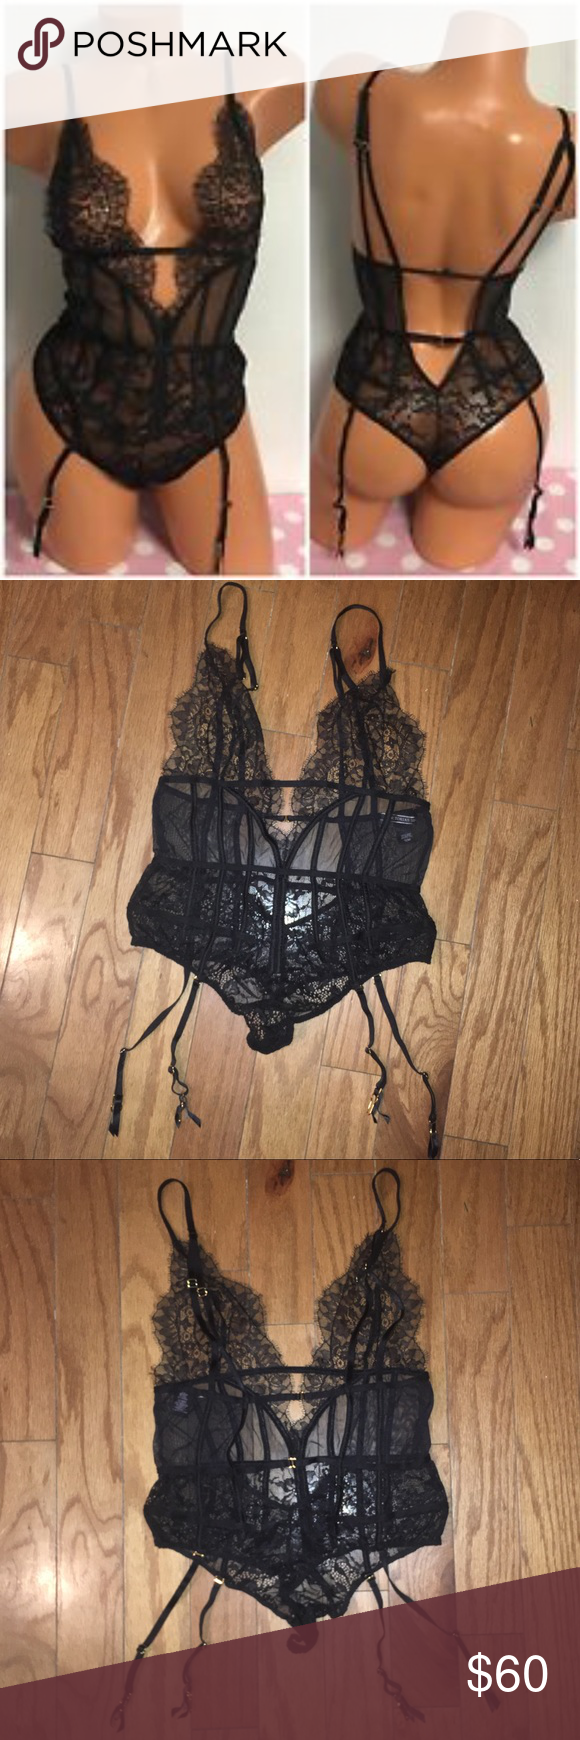 Victoria's Secret Black Lace Teddy w/garters Med. Absolutely stunning black lace teddy from Victoria's Secret. It's got detachable garters that you can easily remove if you'd like. It has gorgeous chantilly lace and corset style boning throughout the midriff area, and a thong bottom. You need this gorgeous piece of lingerie!!!! Send me offers loves :) Victoria's Secret Intimates & Sleepwear Chemises & Slips